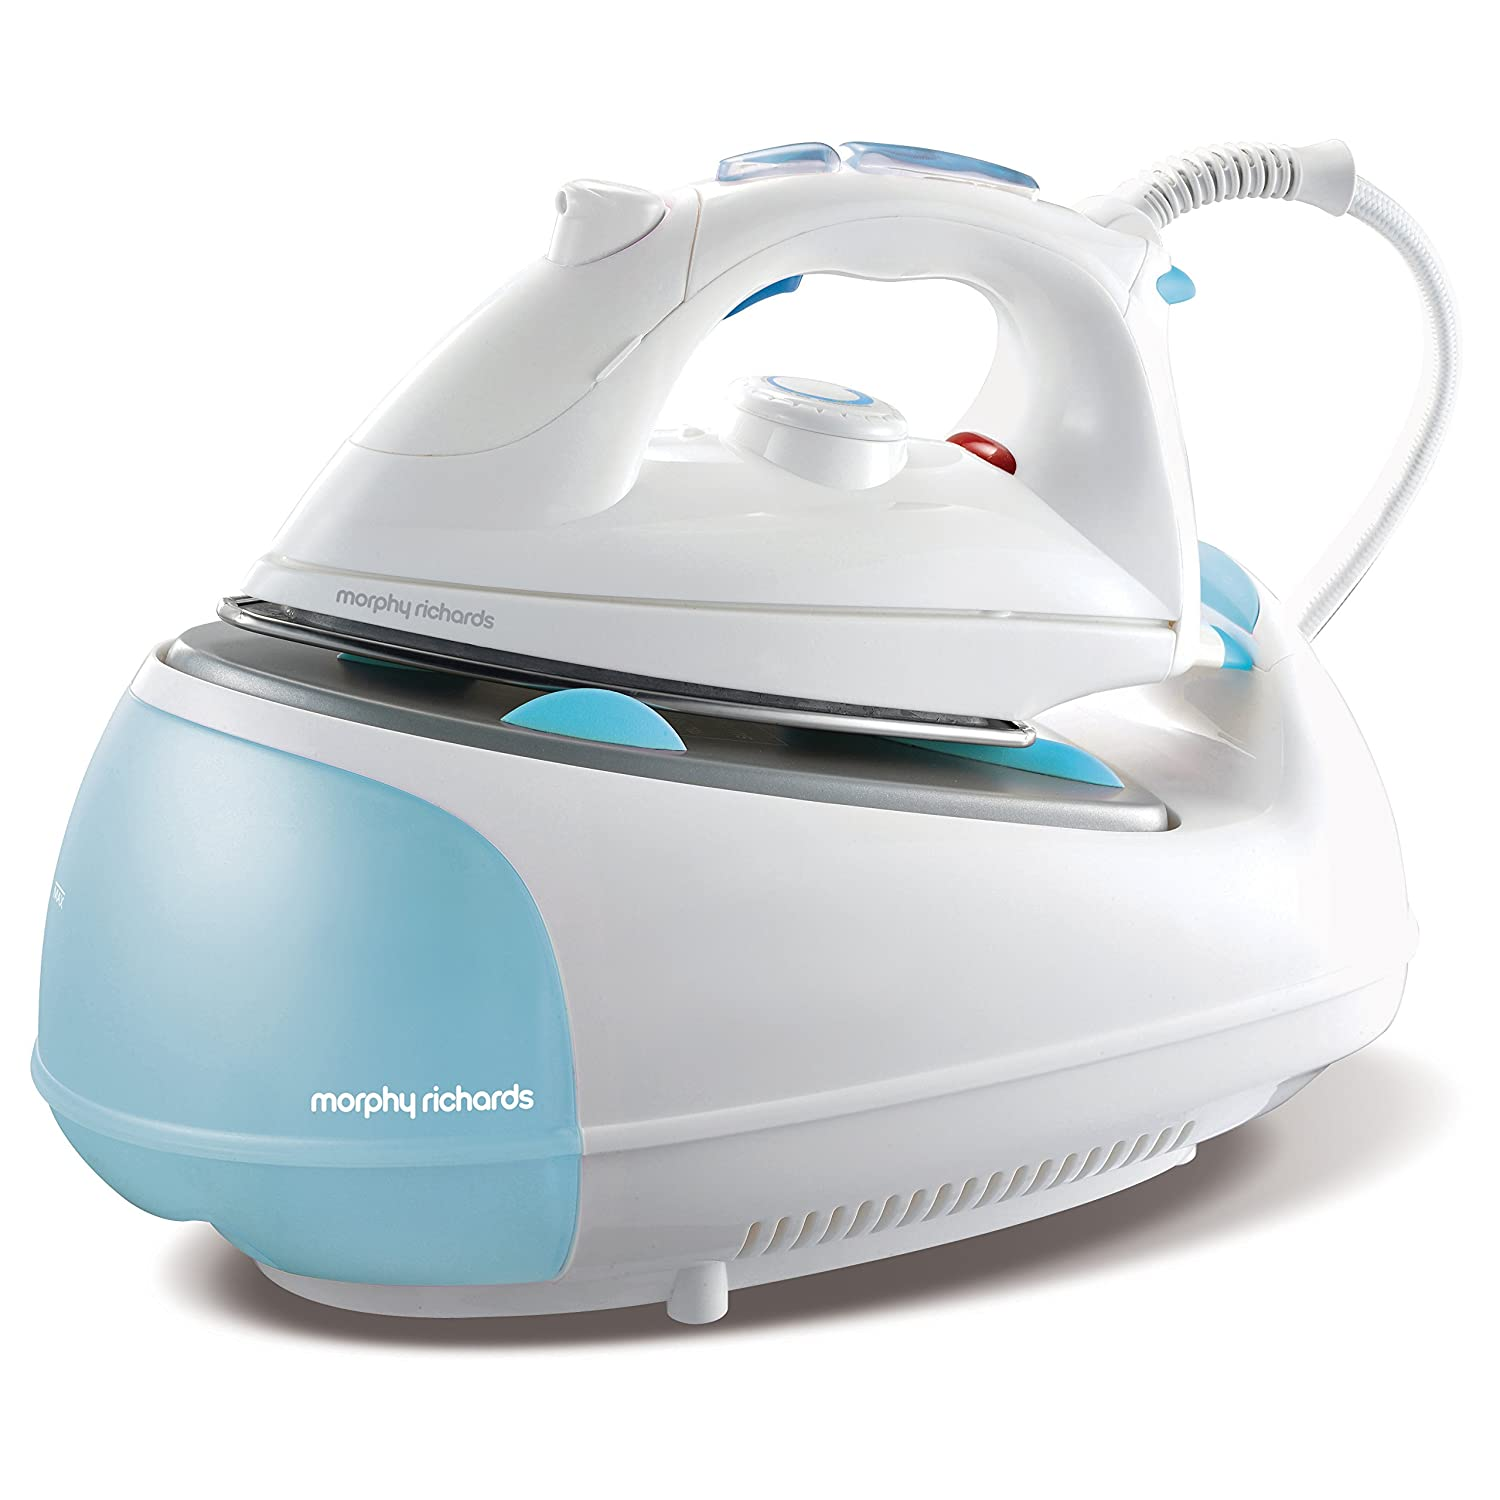 Morphy Richards 333021 Steam Generator Iron Jet Steam 333021 Steam Generators Blue White